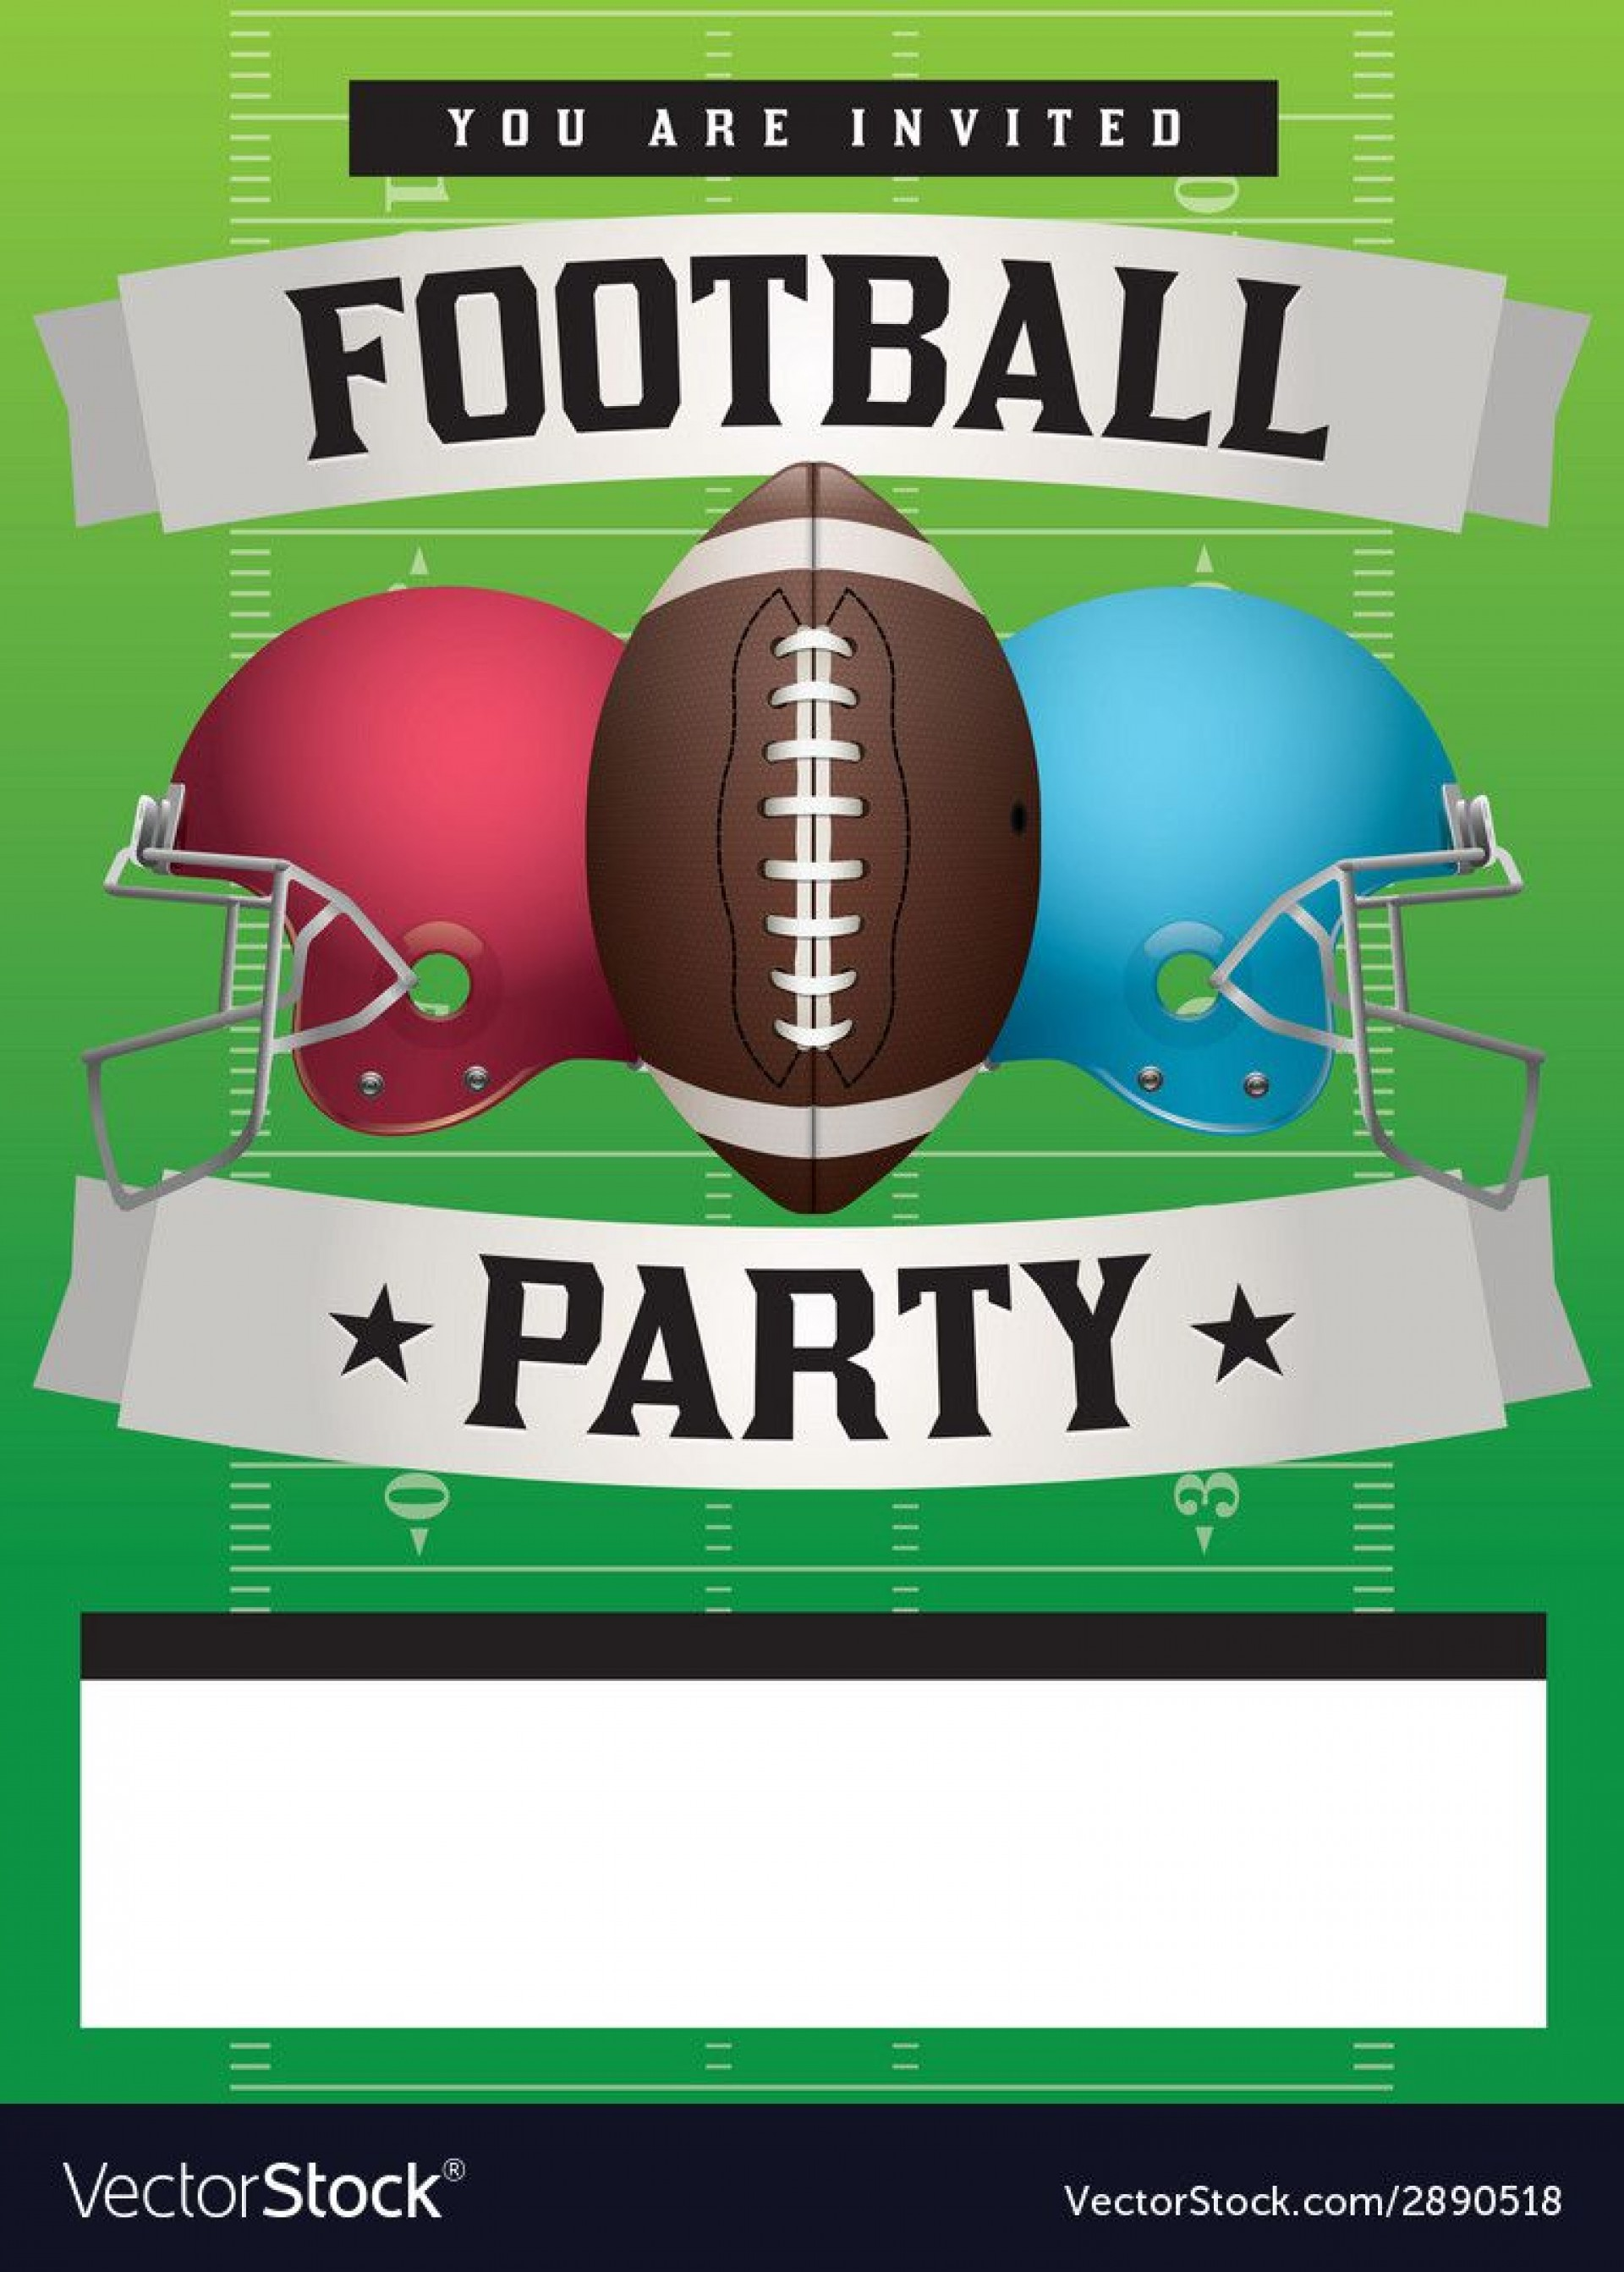 010 Impressive Football Flyer Template Free Design  Download Flag Party1920